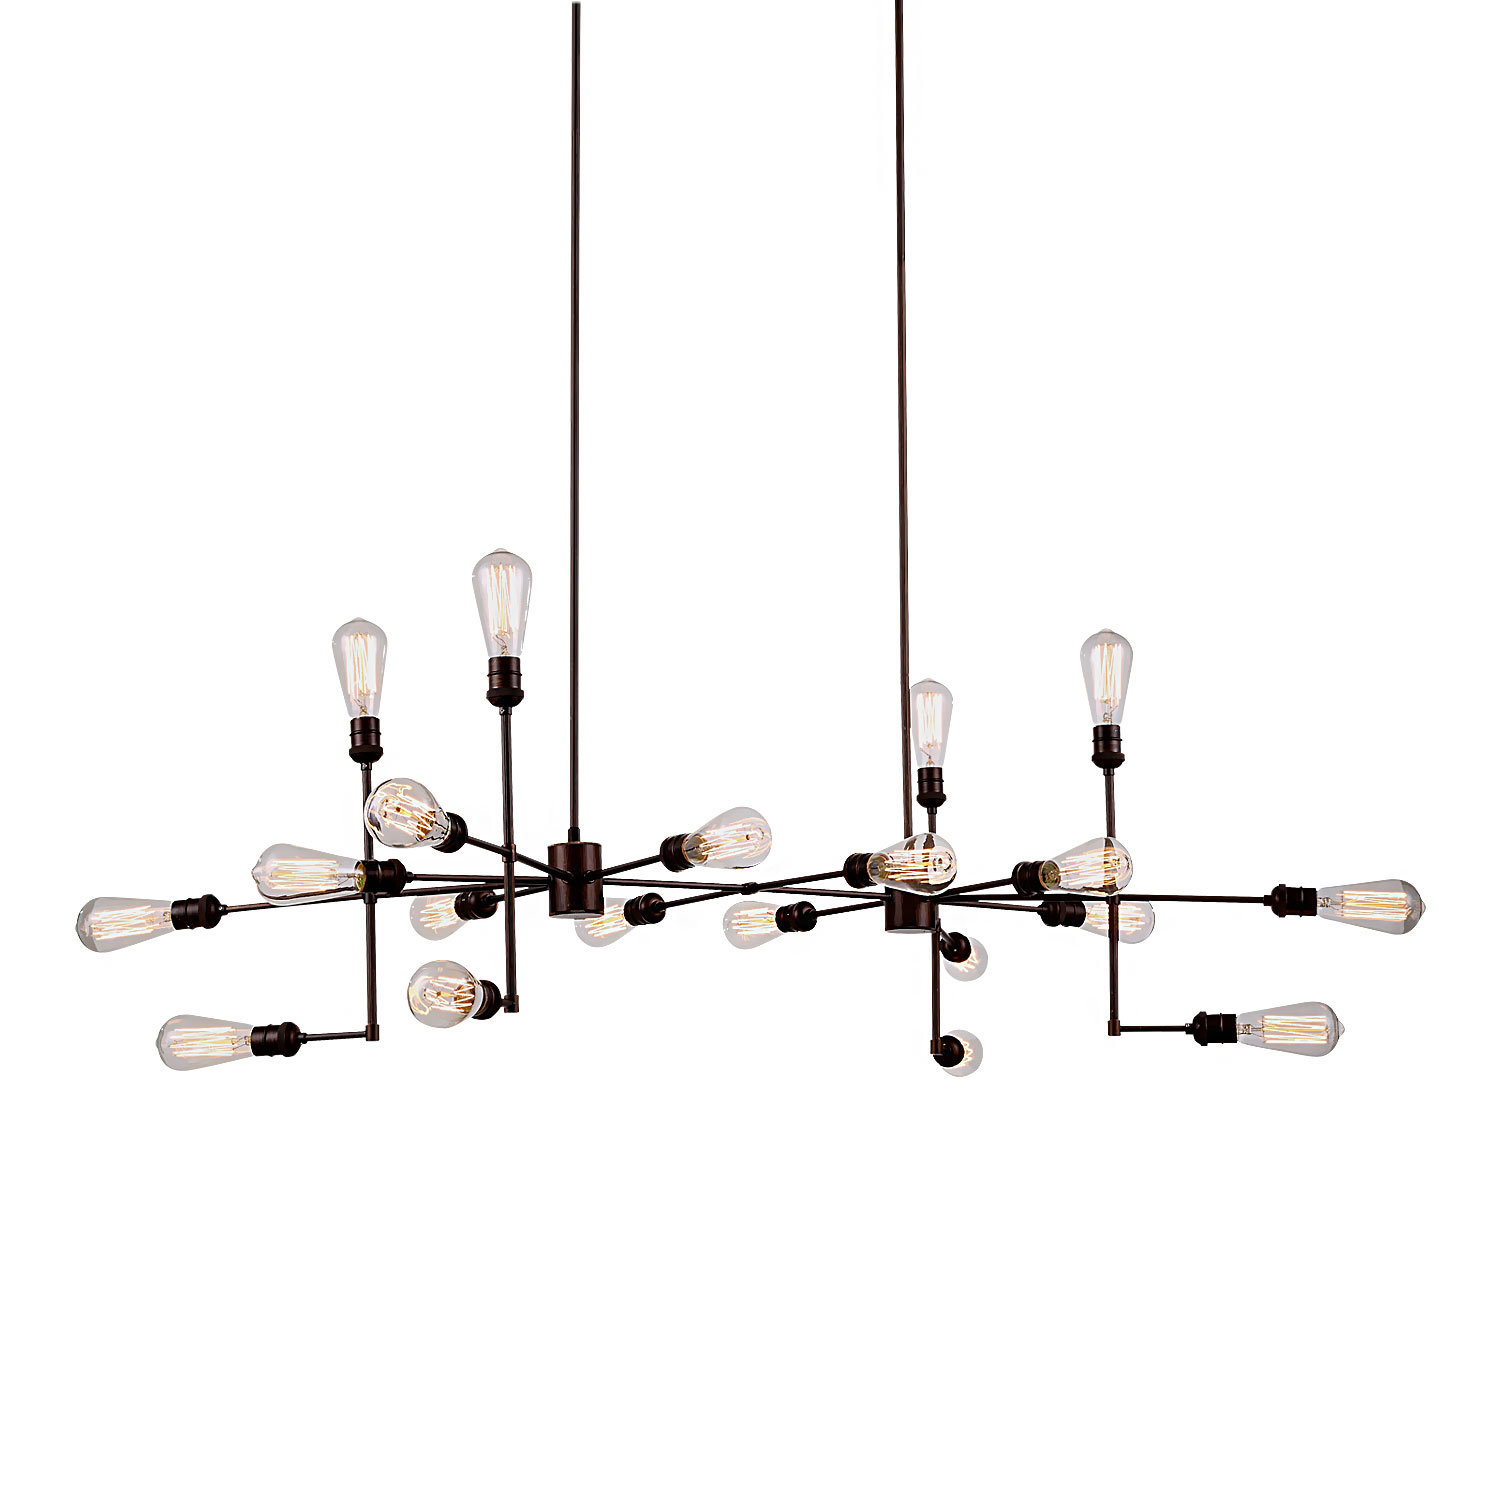 Restoration revolution varick chandelier 20 light 305 701898 varick chandelier 20 light 305 arubaitofo Choice Image